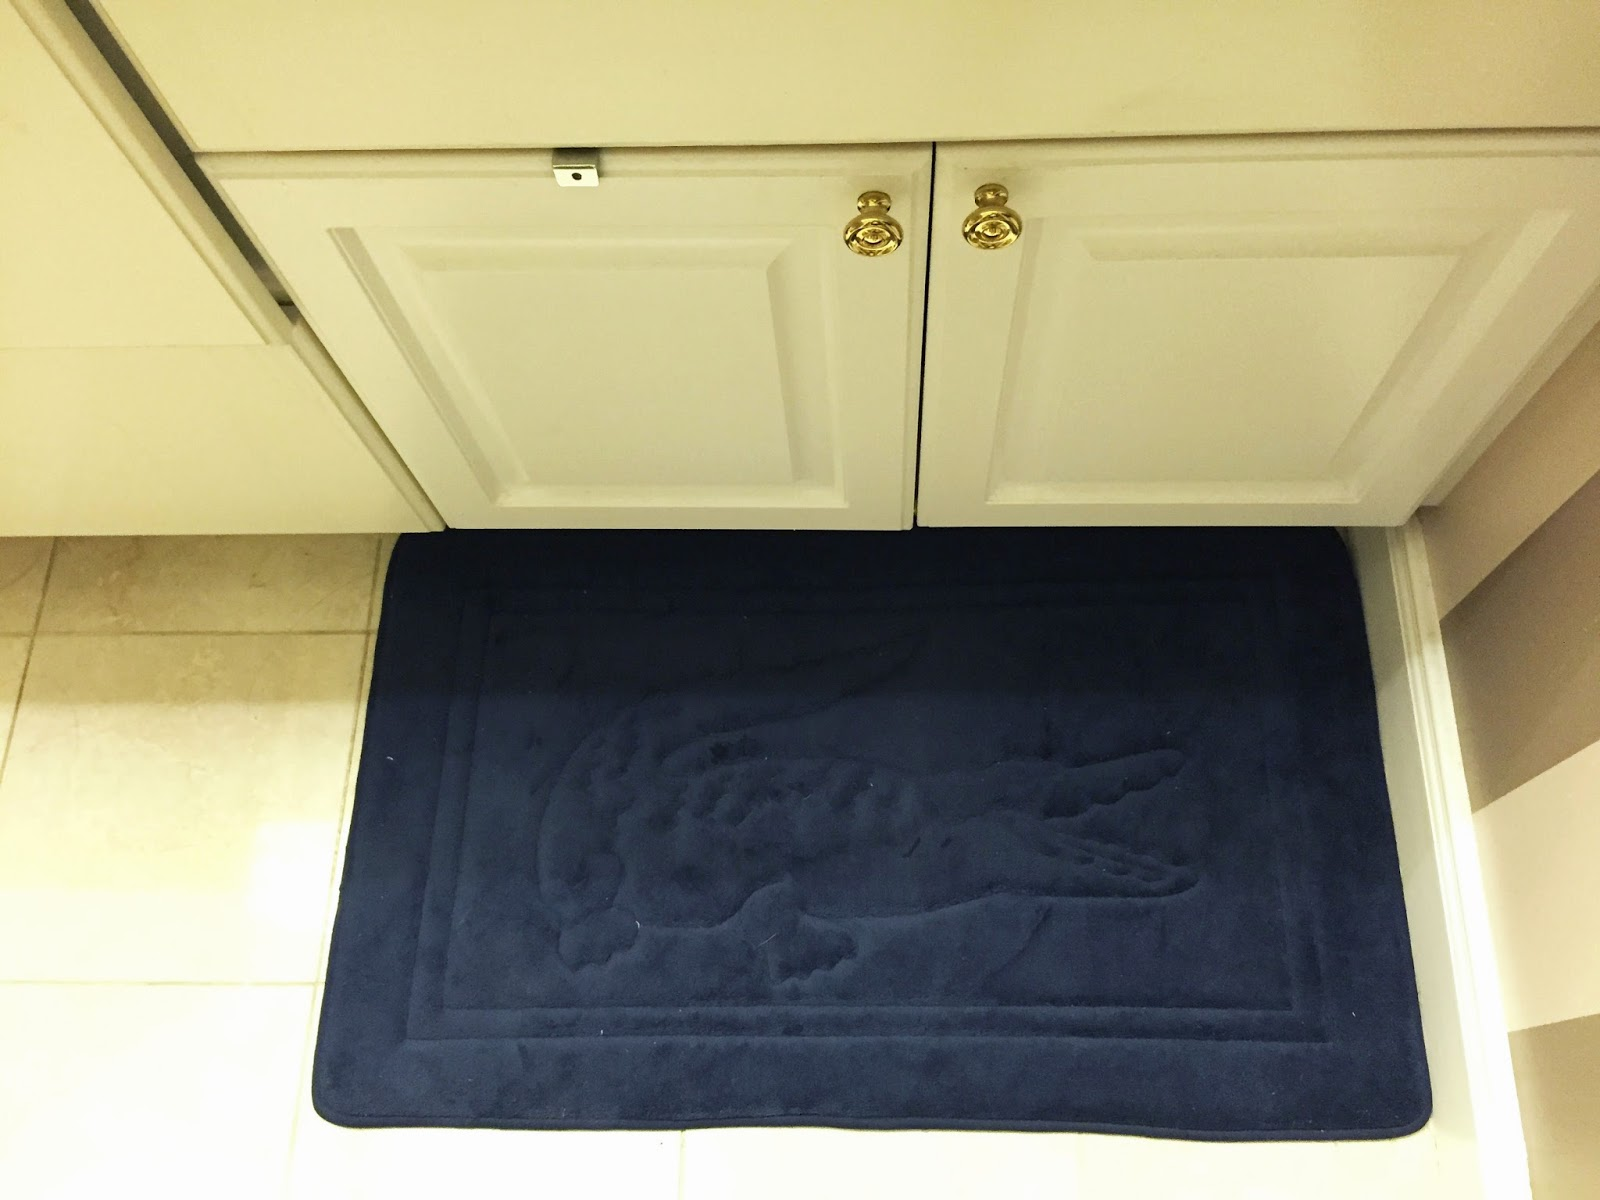 Memory Foam Bathroom Rug Set My Superficial Endeavors Lacoste Makes Awesome Bath Towels